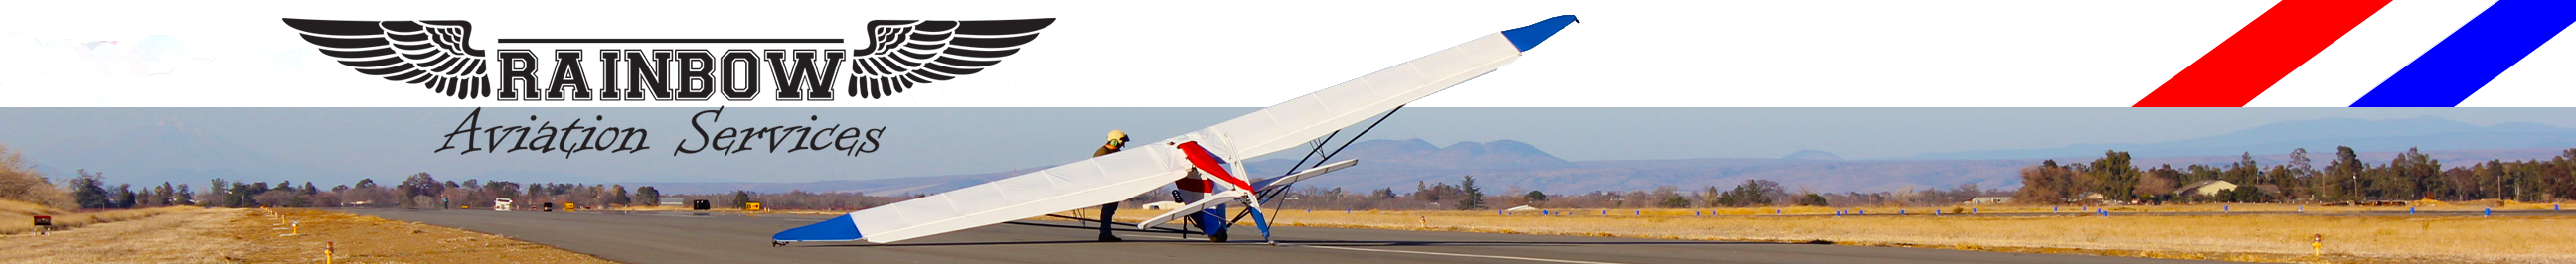 Home of the EMG-6 Electric Motor Glider